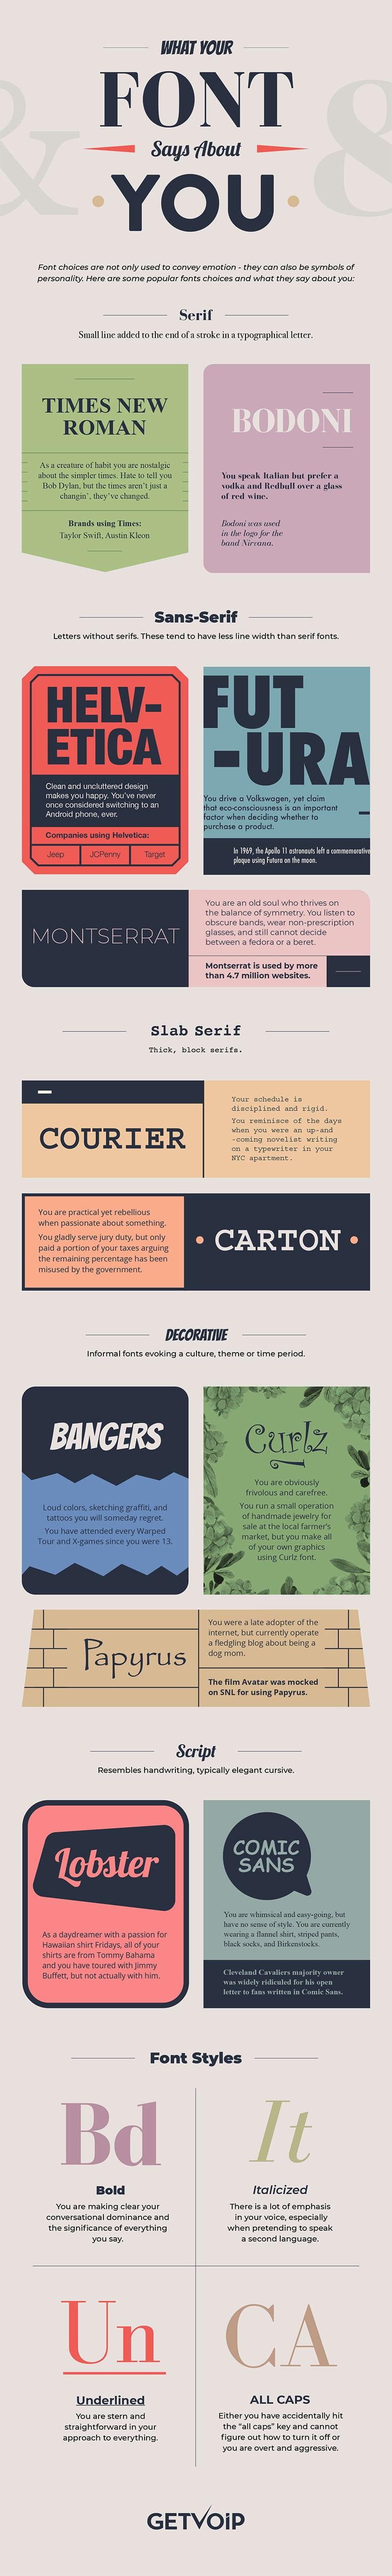 What Your Font Choices Say About You